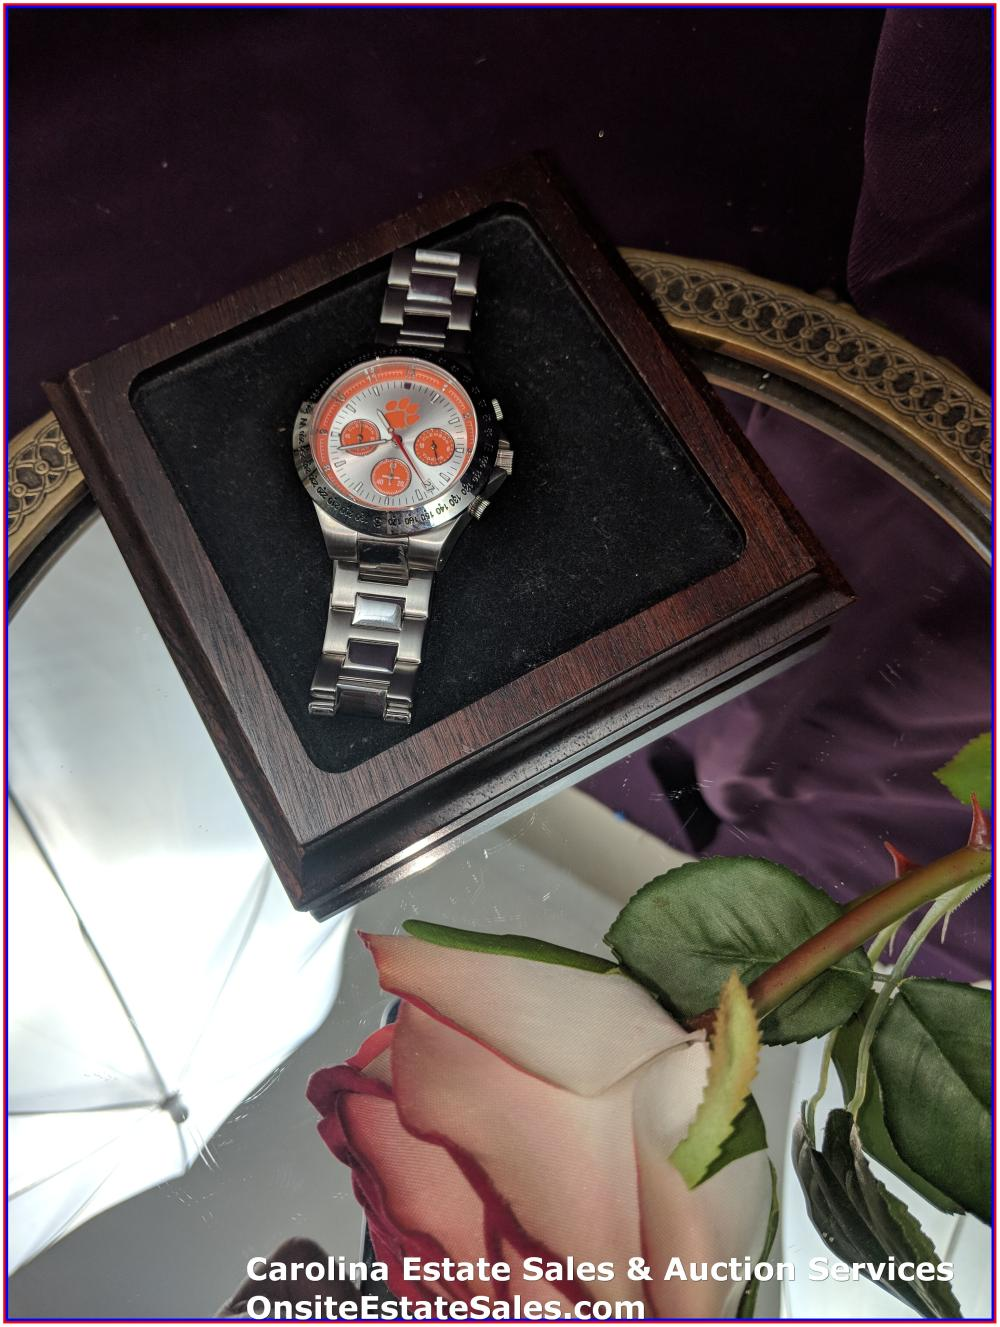 Clemson Mens Watch - Works